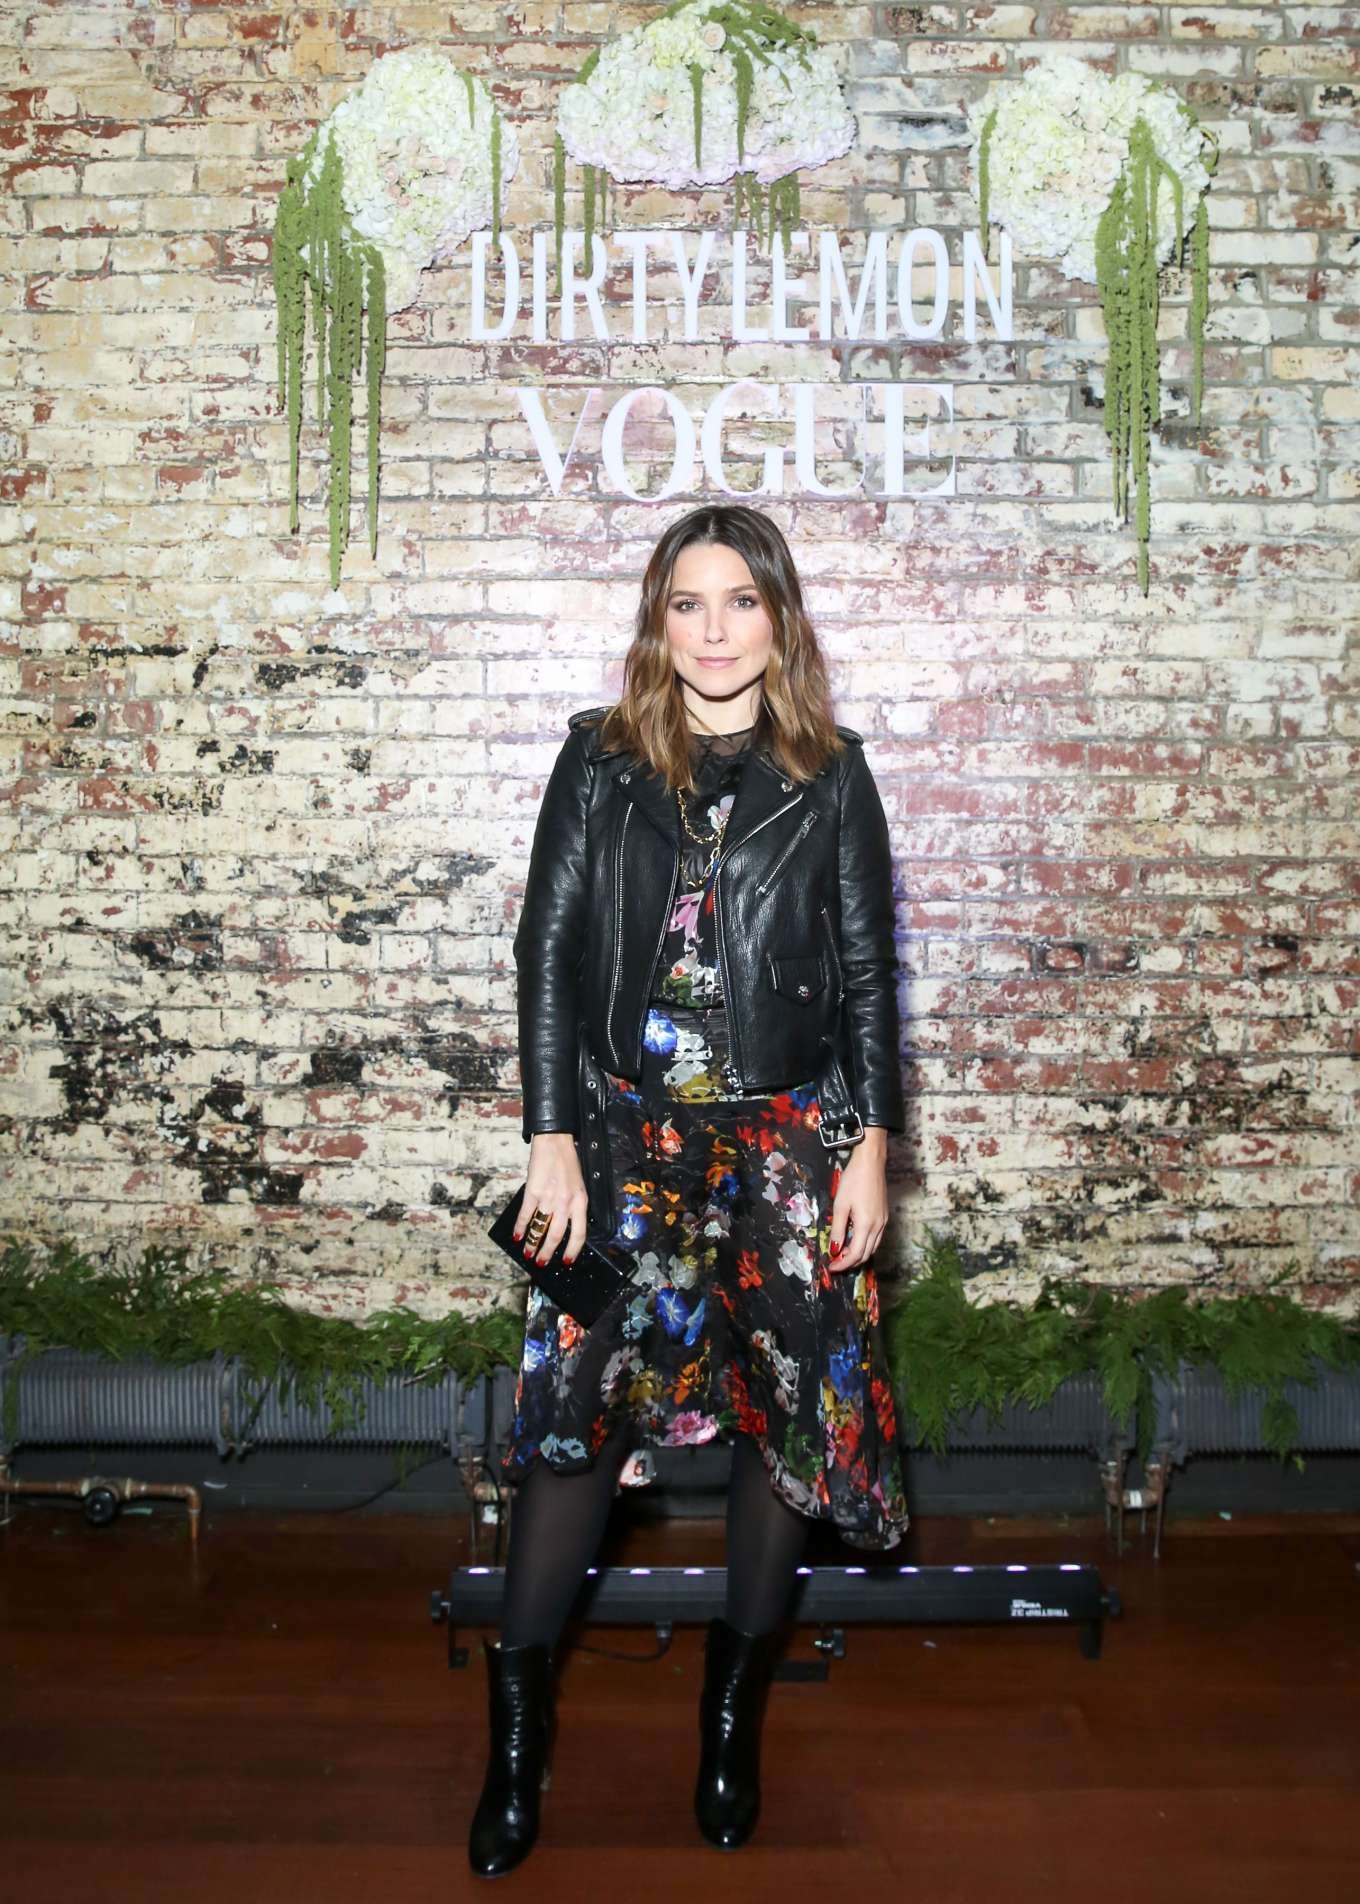 Sophia Bush - DIRTY LEMON x Vogue Launch in New York City